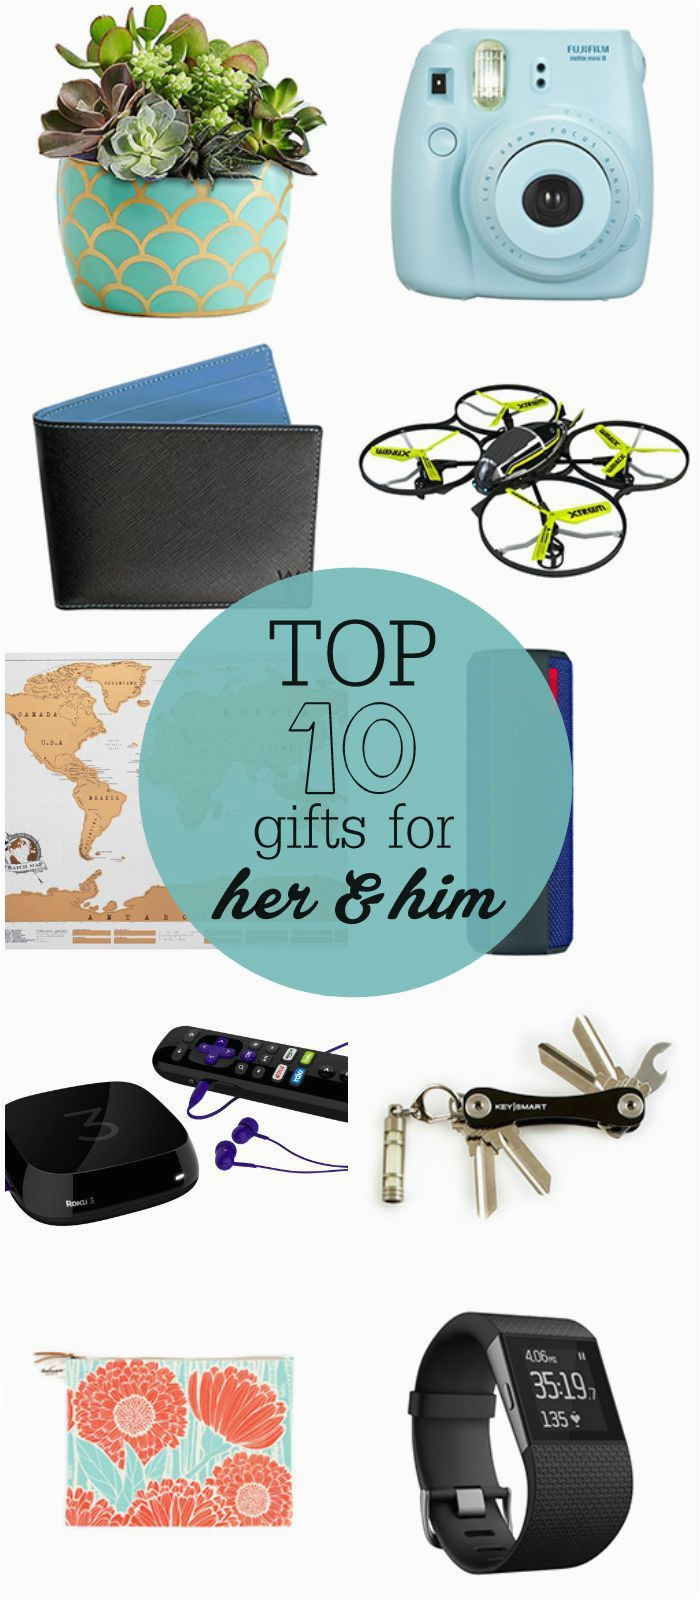 Top 10 Birthday Gifts for Boyfriend top 10 Gifts for Her and Him